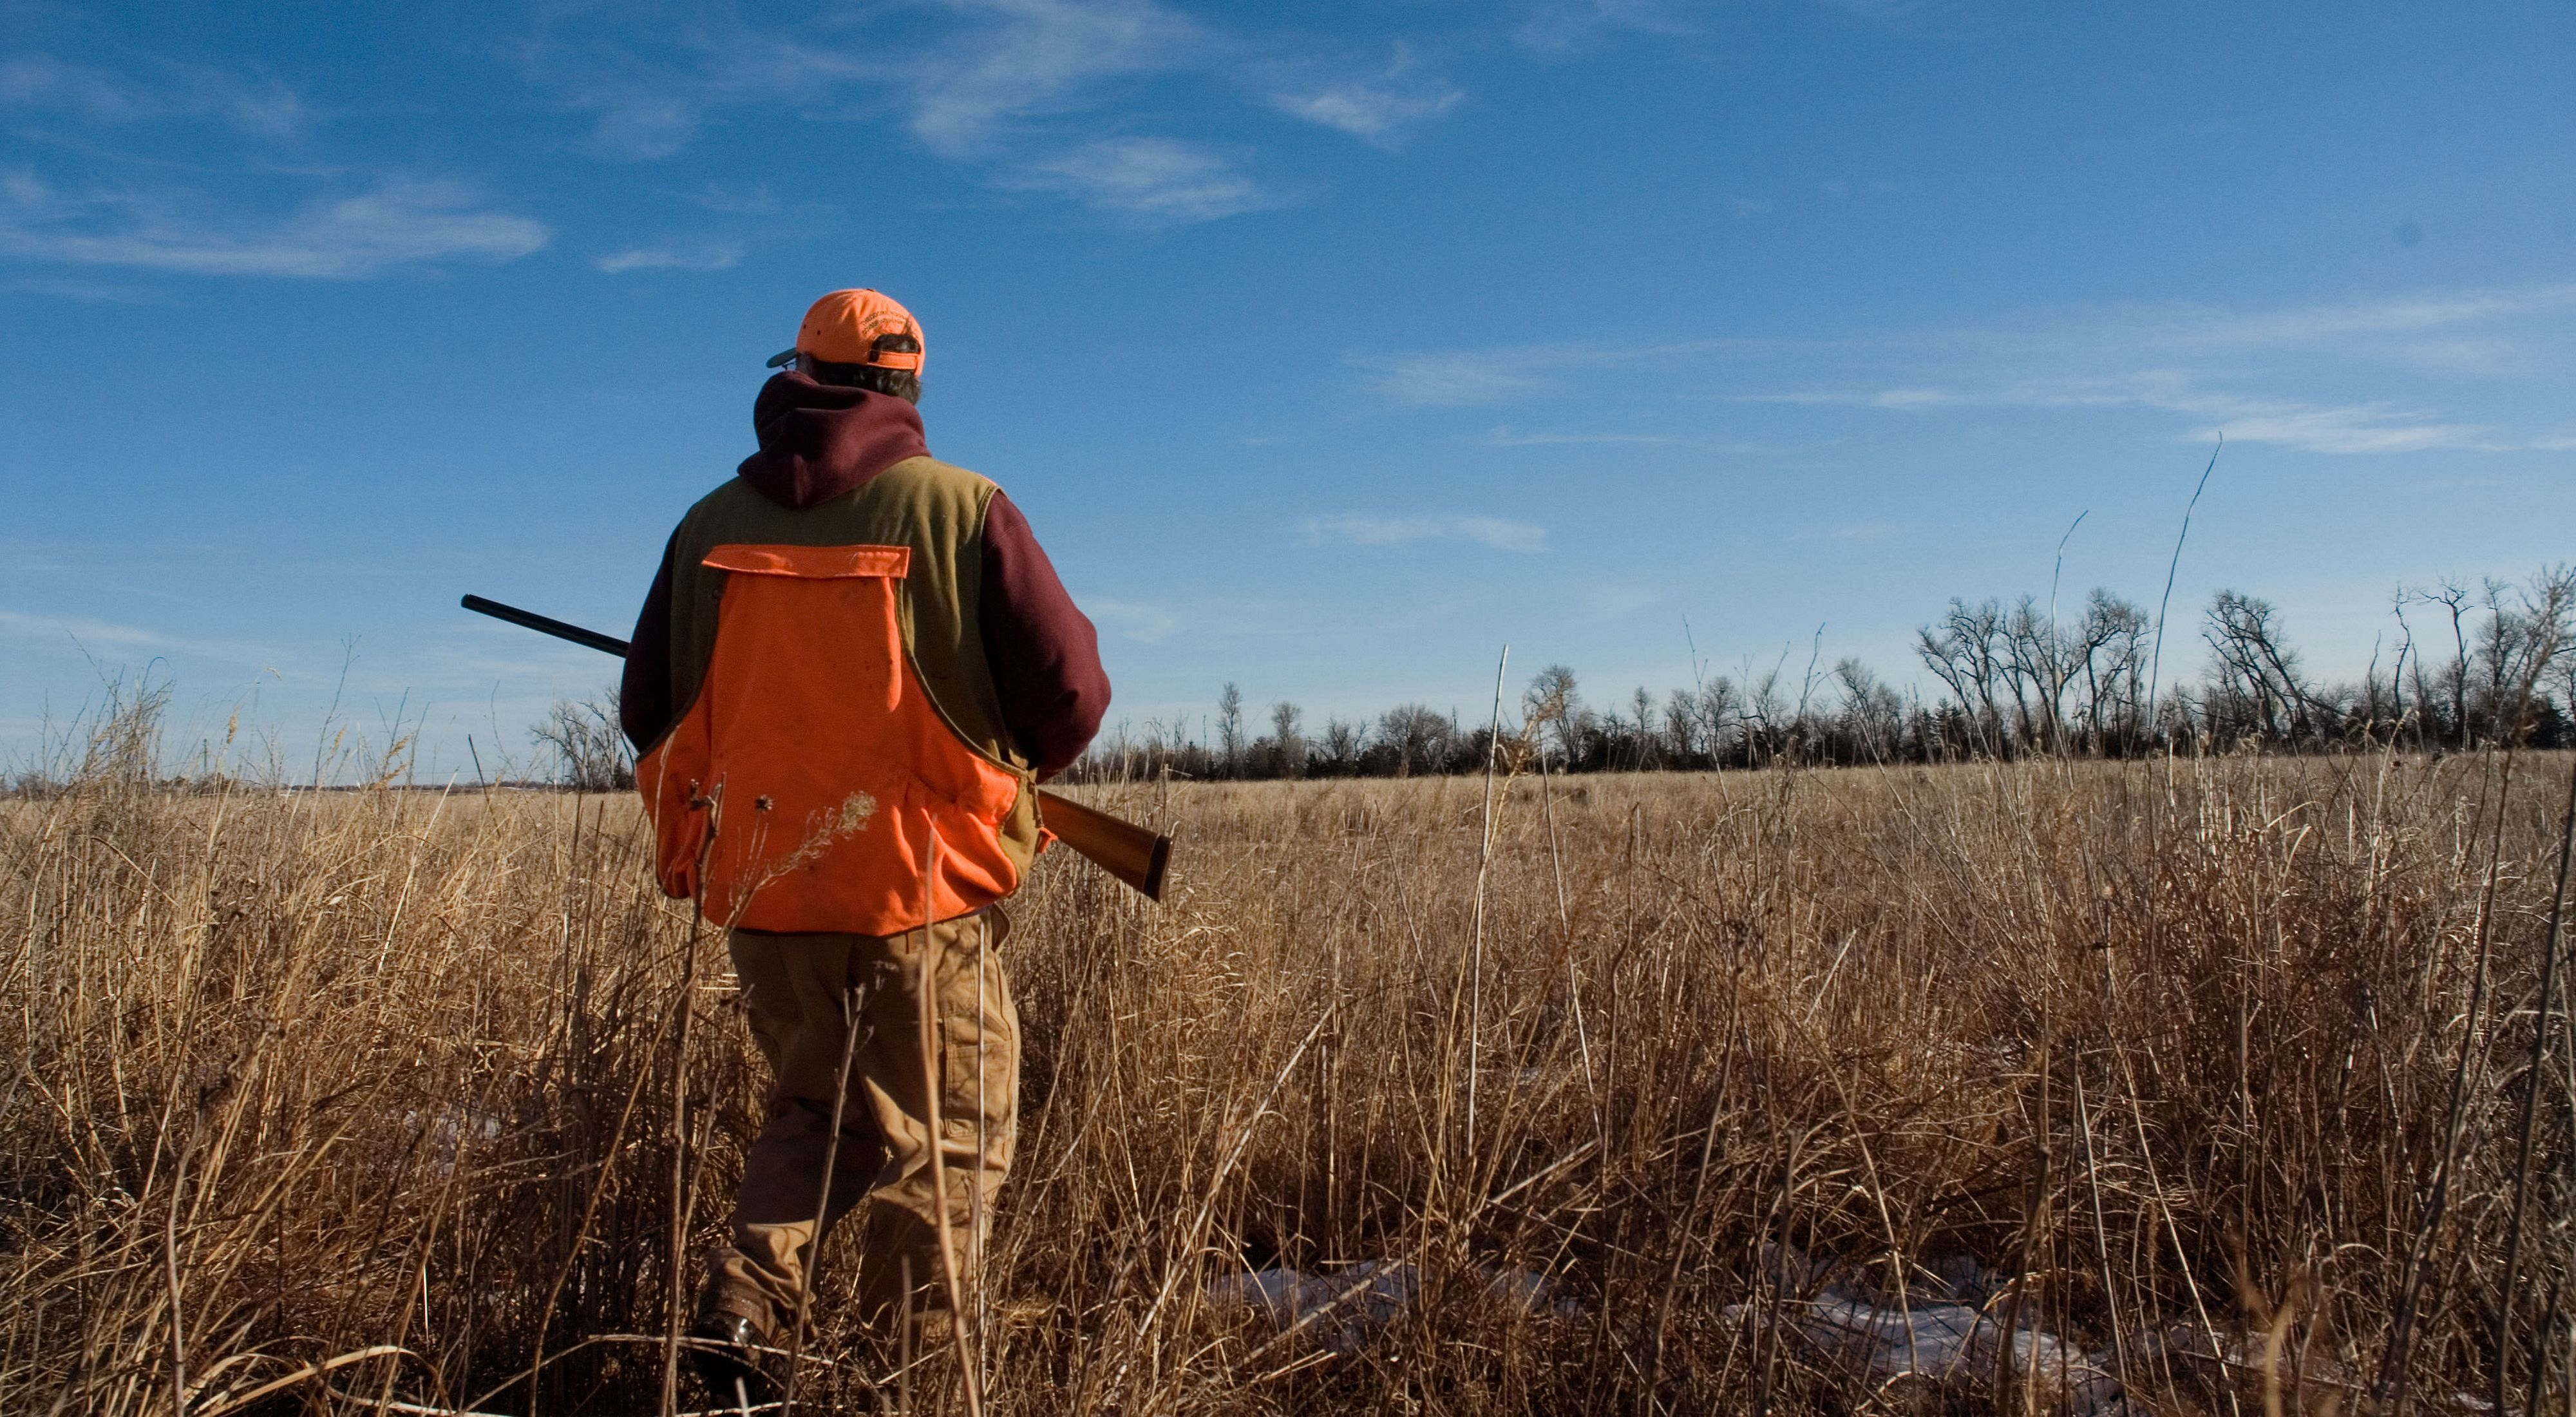 A man with a gun sets out to hunt on grasslands